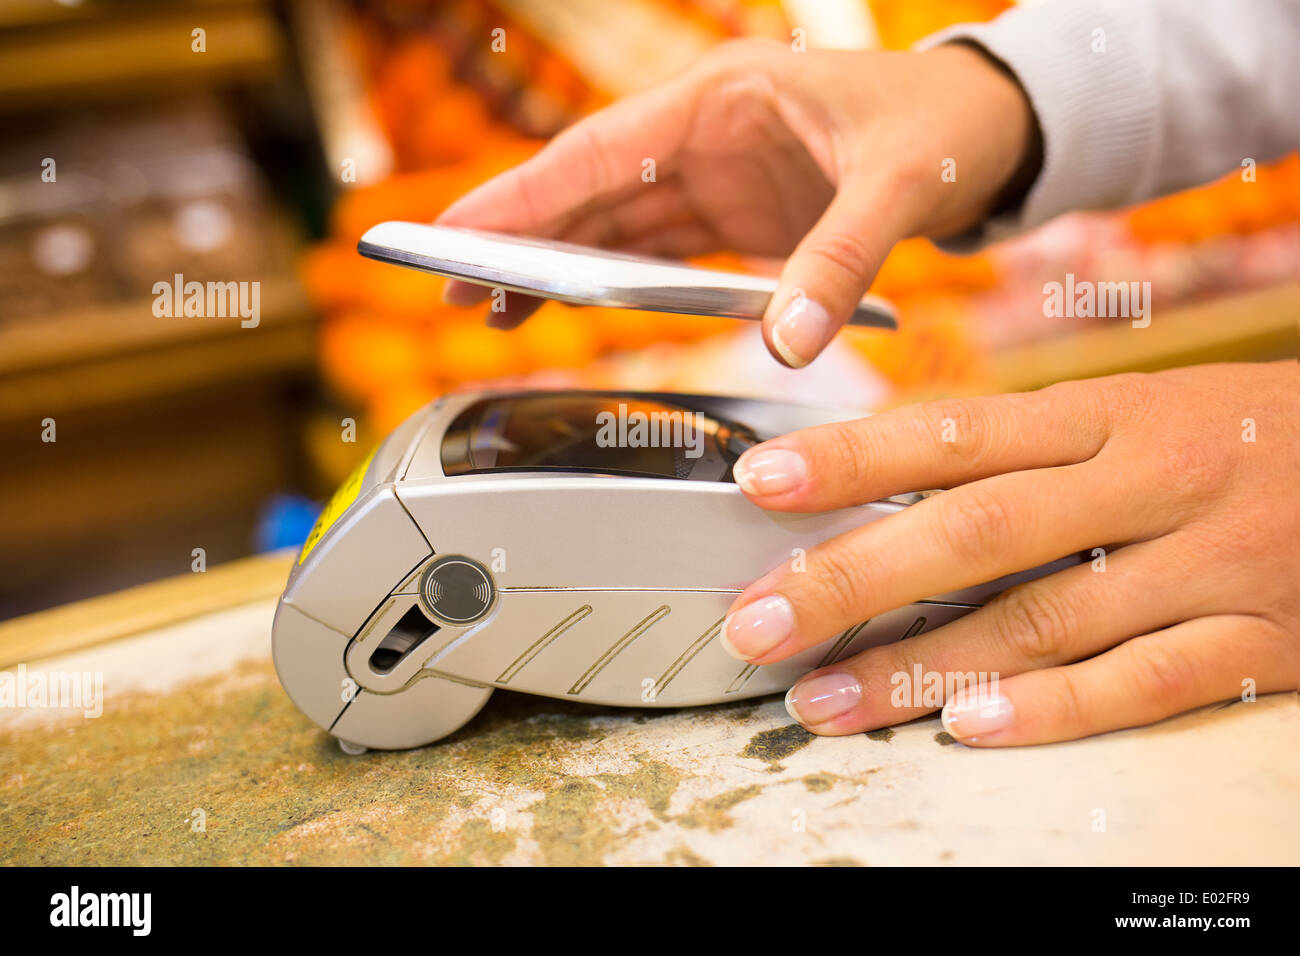 Female electronic payment close-up cell phone hand shop electronic reader - Stock Image